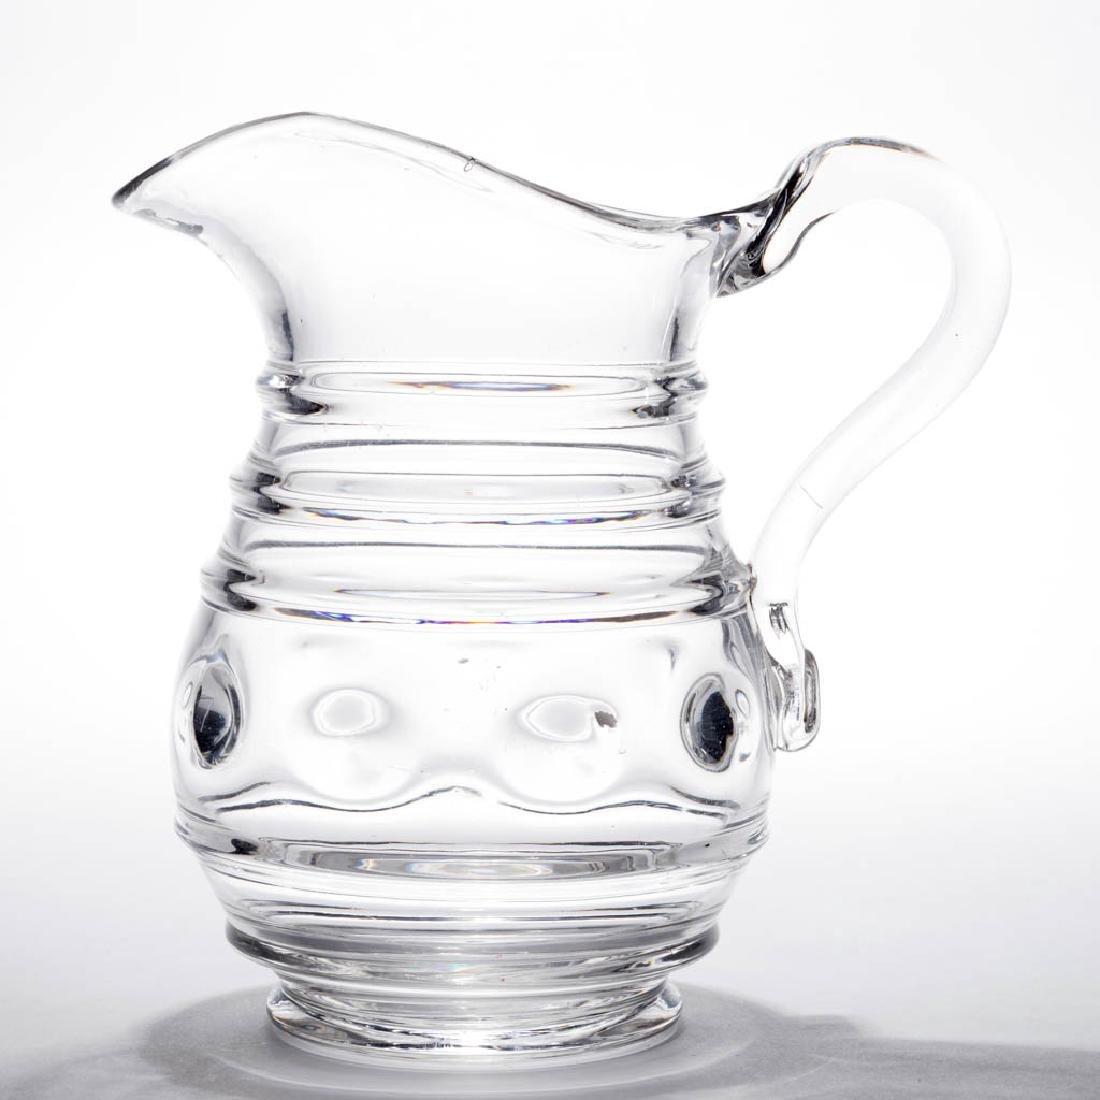 BLOWN-MOLDED RING AND LENS WATER PITCHER